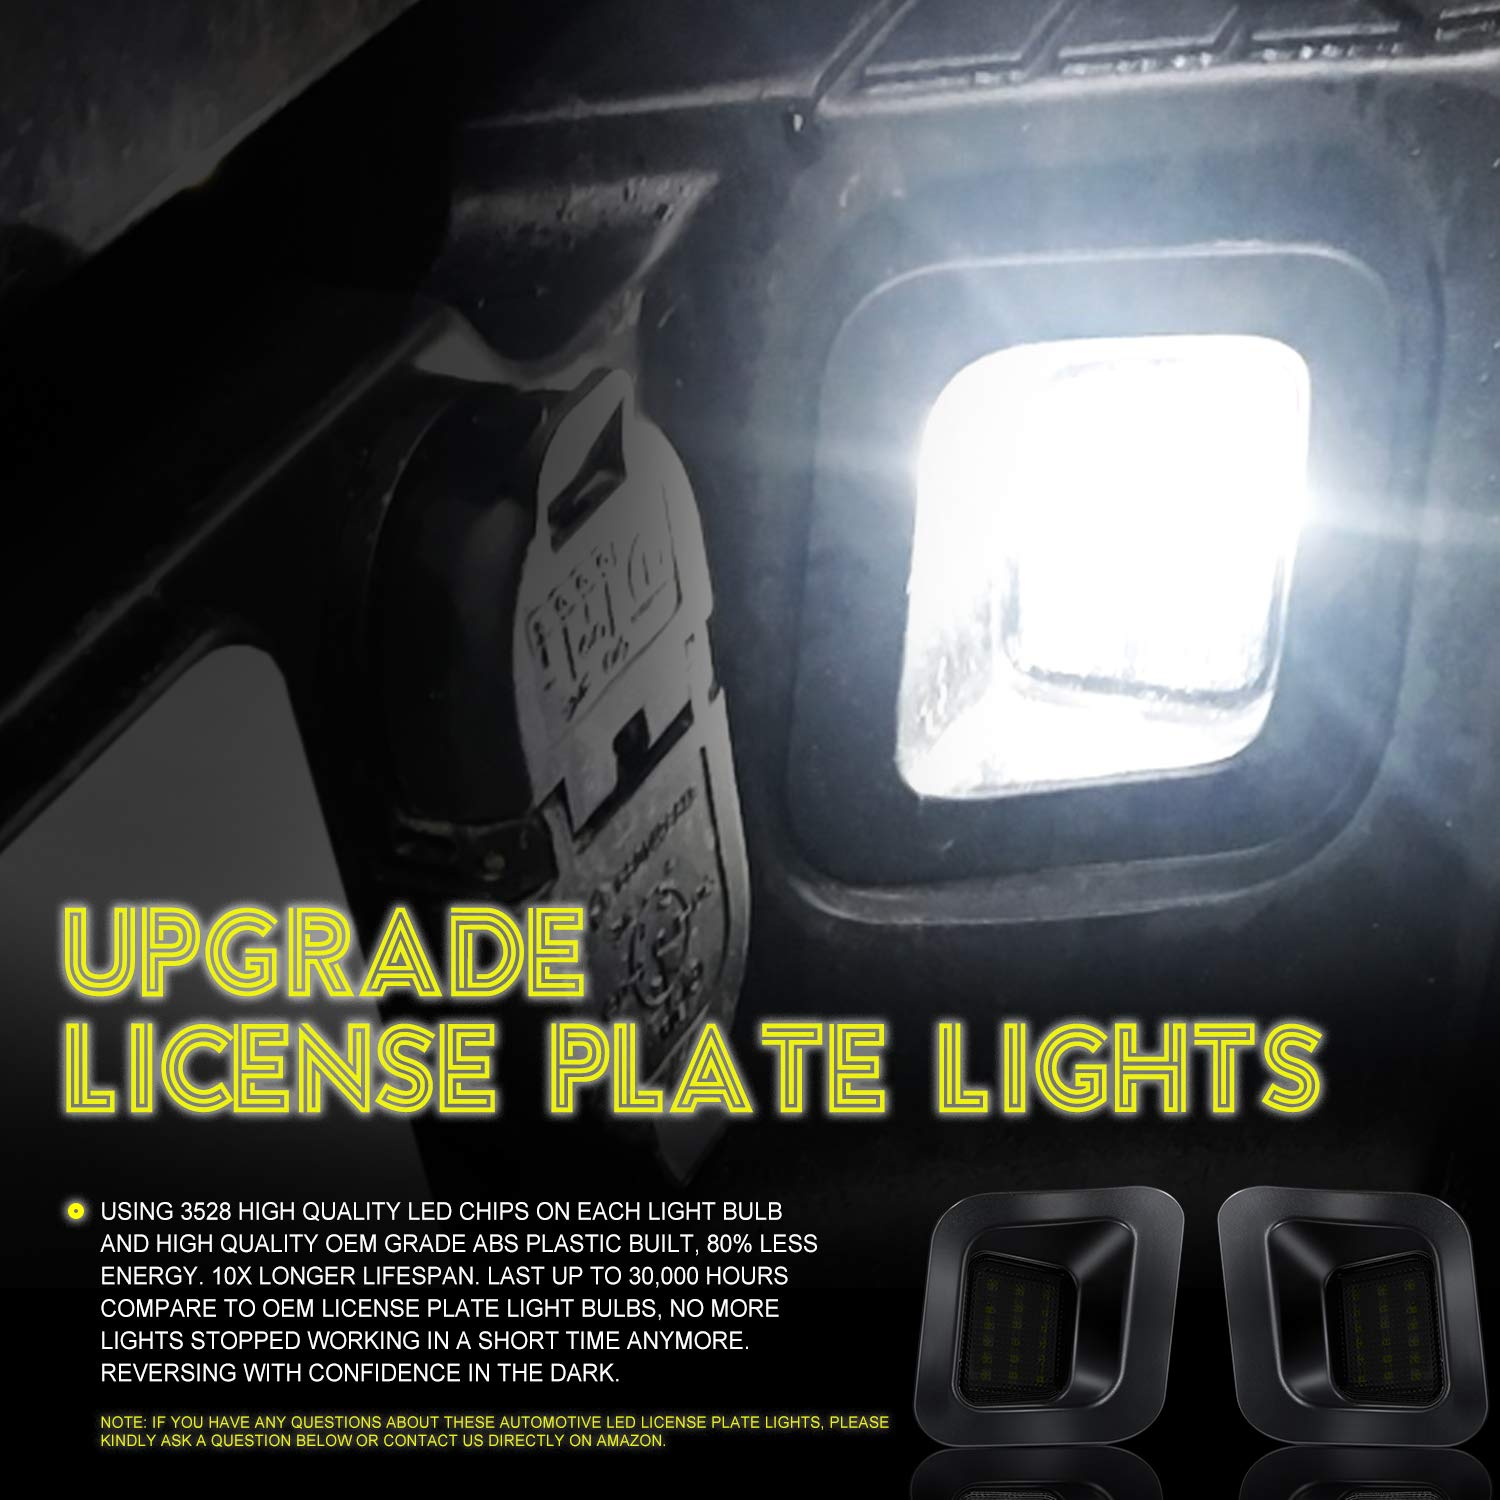 6500K, 2 Pack CAR ROVER Full LED License Plate Light Lamp Assembly Replacement for Ford F-150 F-250 F-350 F-450 F-550 Superduty Ranger Pickup Truck Explorer Bronco Excursion Expedition